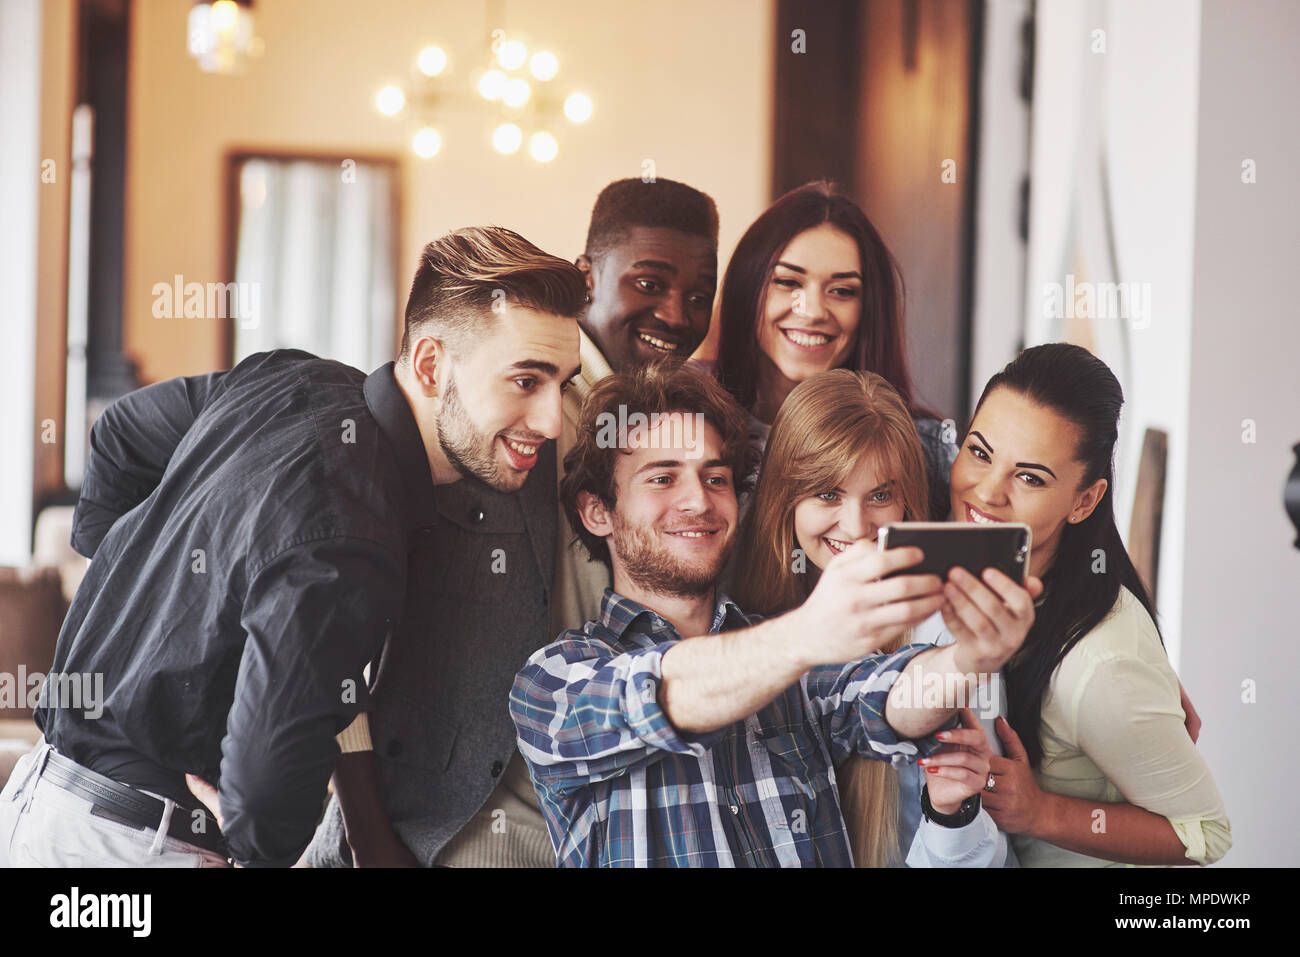 Multiracial people having fun at cafe taking a selfie with mobile phone. Group of young friends sitting at restaurant taking self portrait with smart phone - Stock Image